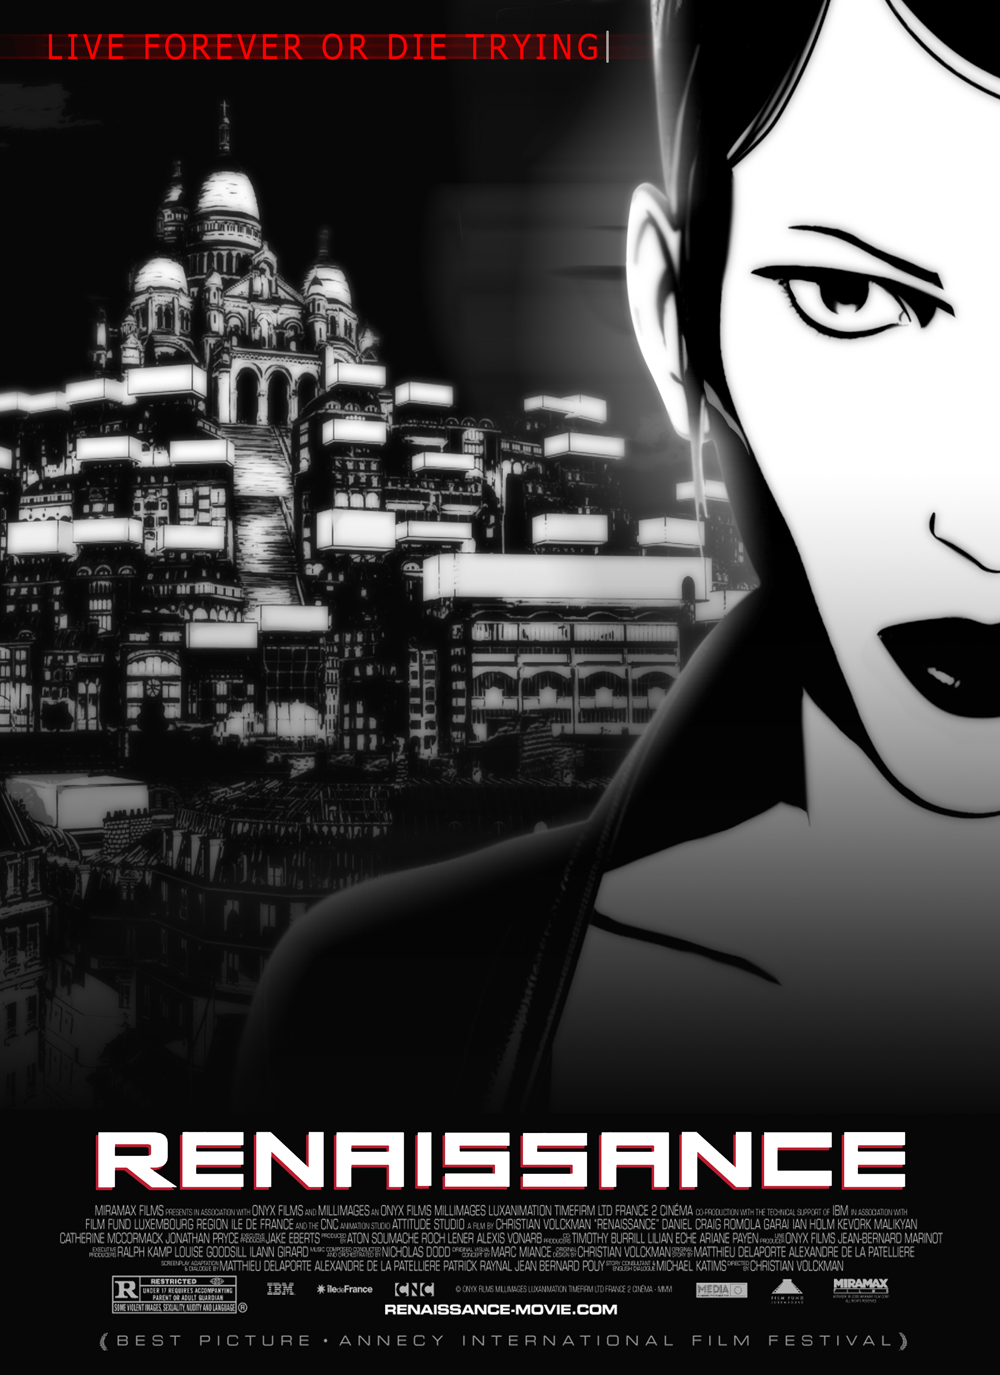 Renaissance_Movie_Poster_by_therook.jpg